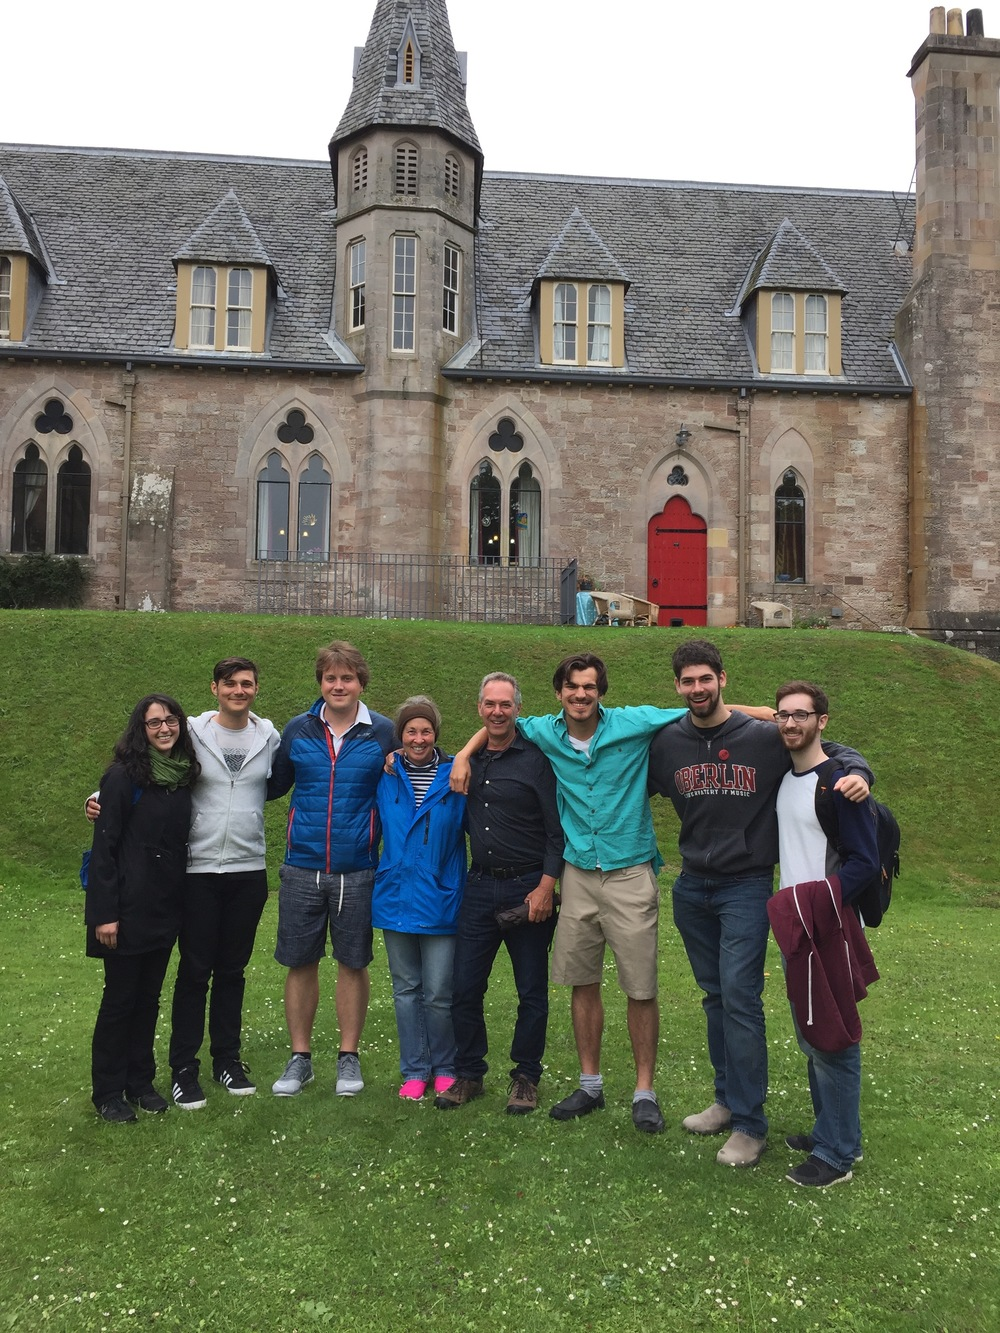 Oberlin Studio (+), in front of Cathedral: Sarah, Lenny Ranallo, JoNell & Stephen Aron, Mohit Dubey, Collin Sterne, Brian King